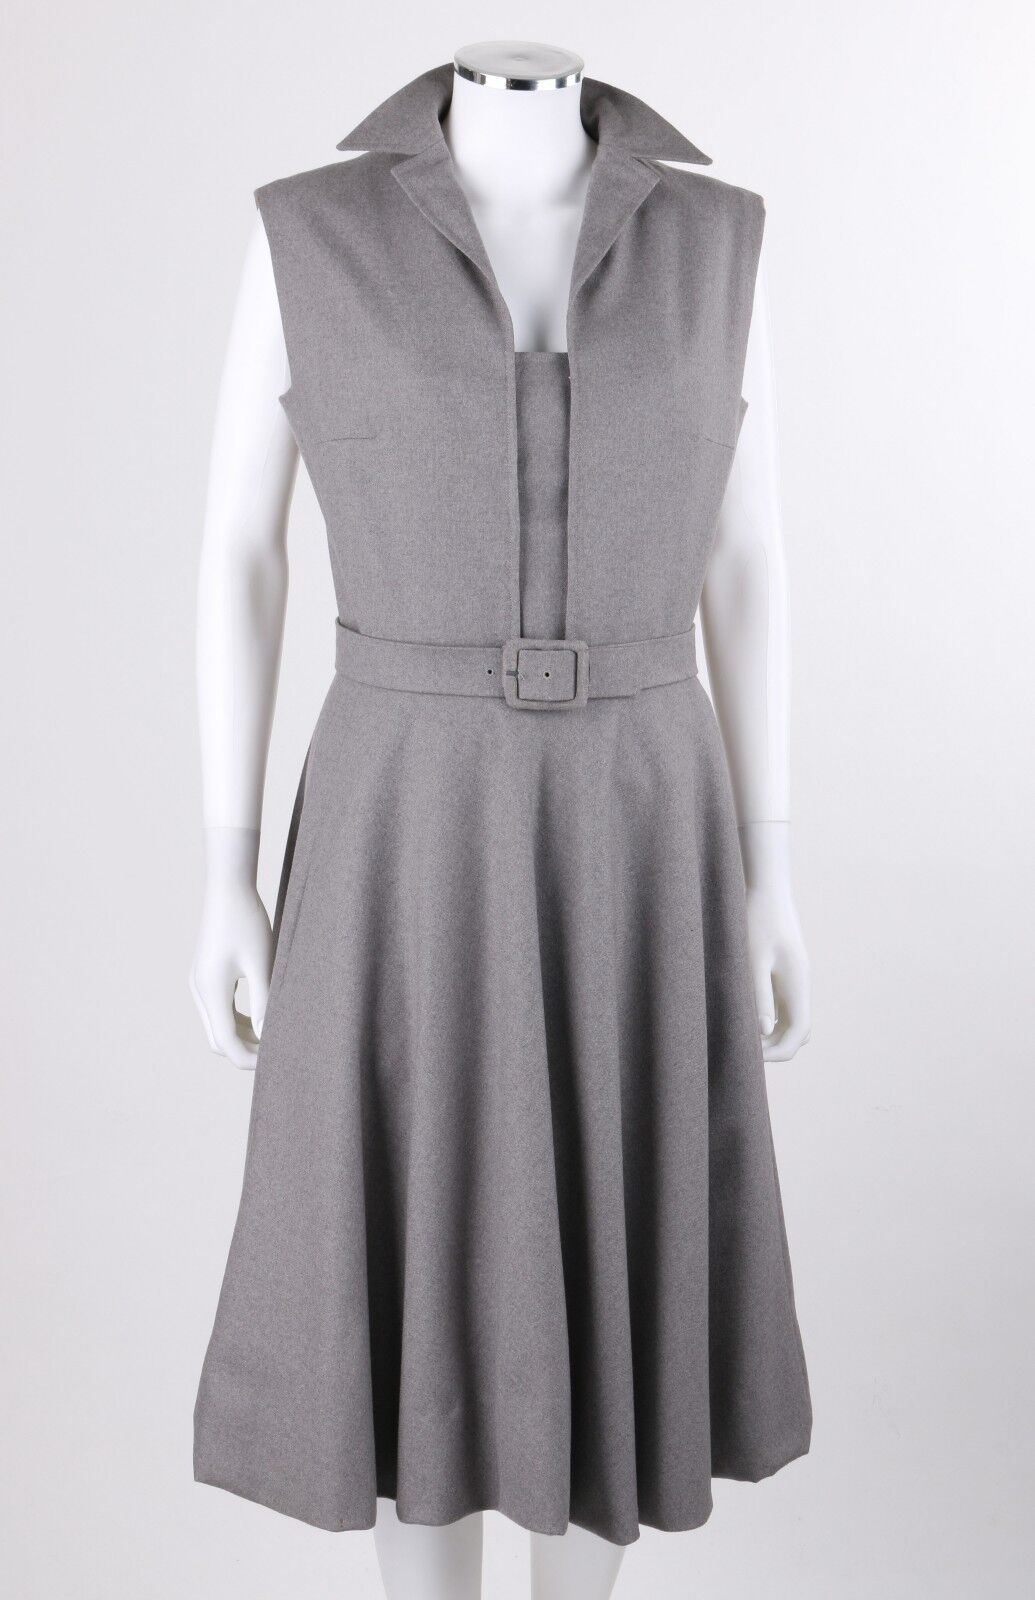 PAULINE TRIGERE c.1980's Gray Wool Extended Shoul… - image 2